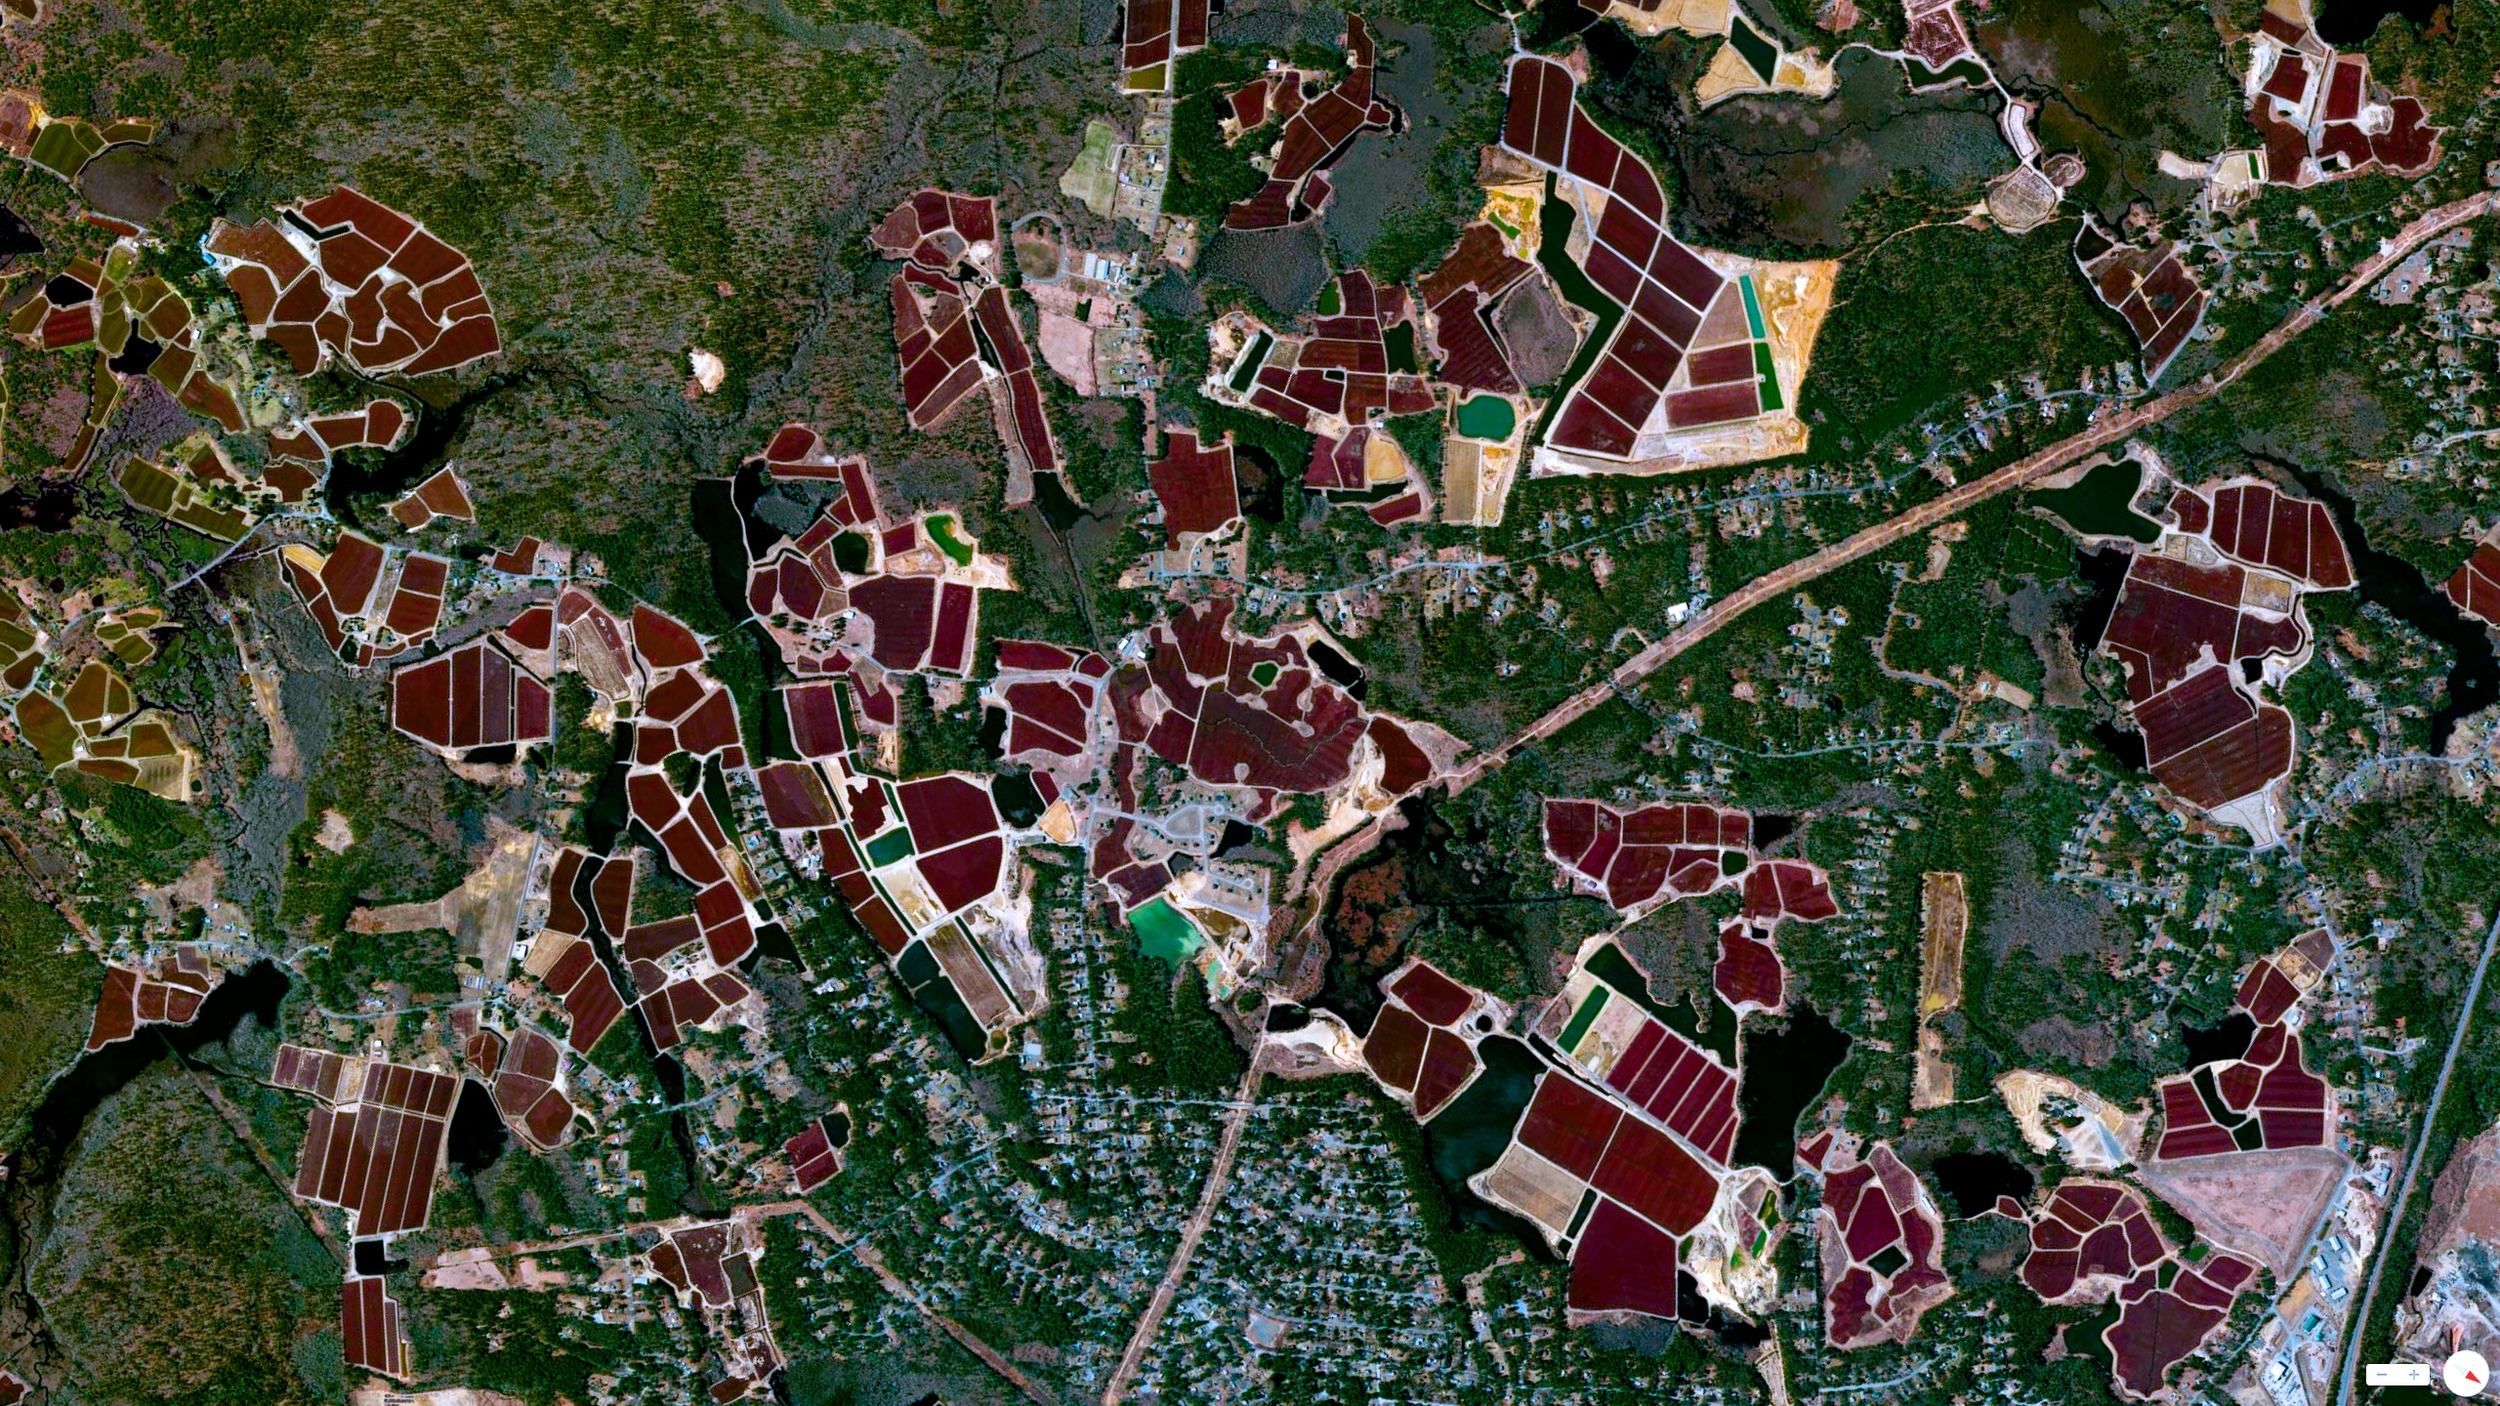 6/17/2014    Cranberry Bogs   Carver, Massachusetts, USA     41°53′00″N 70°45′47″W